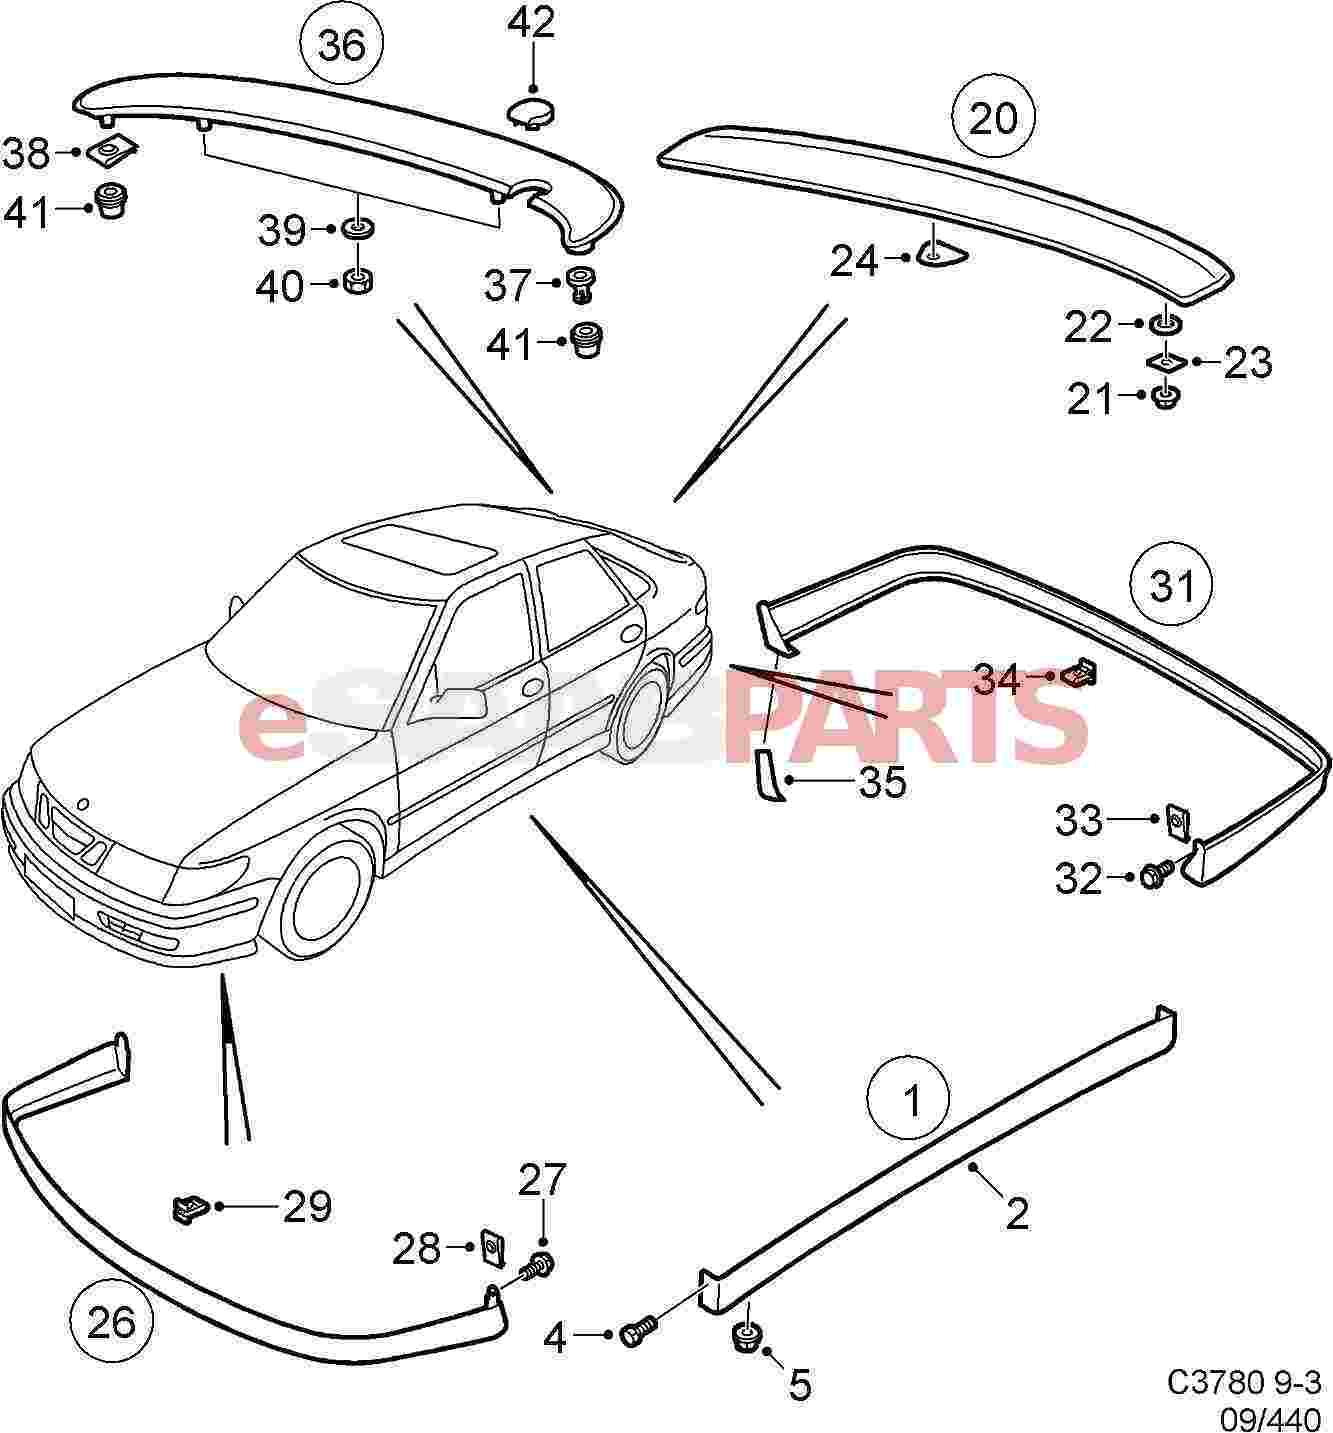 2002 Saab 9 3 Stereo Wiring Diagram Saab 9-3 Dash Lights